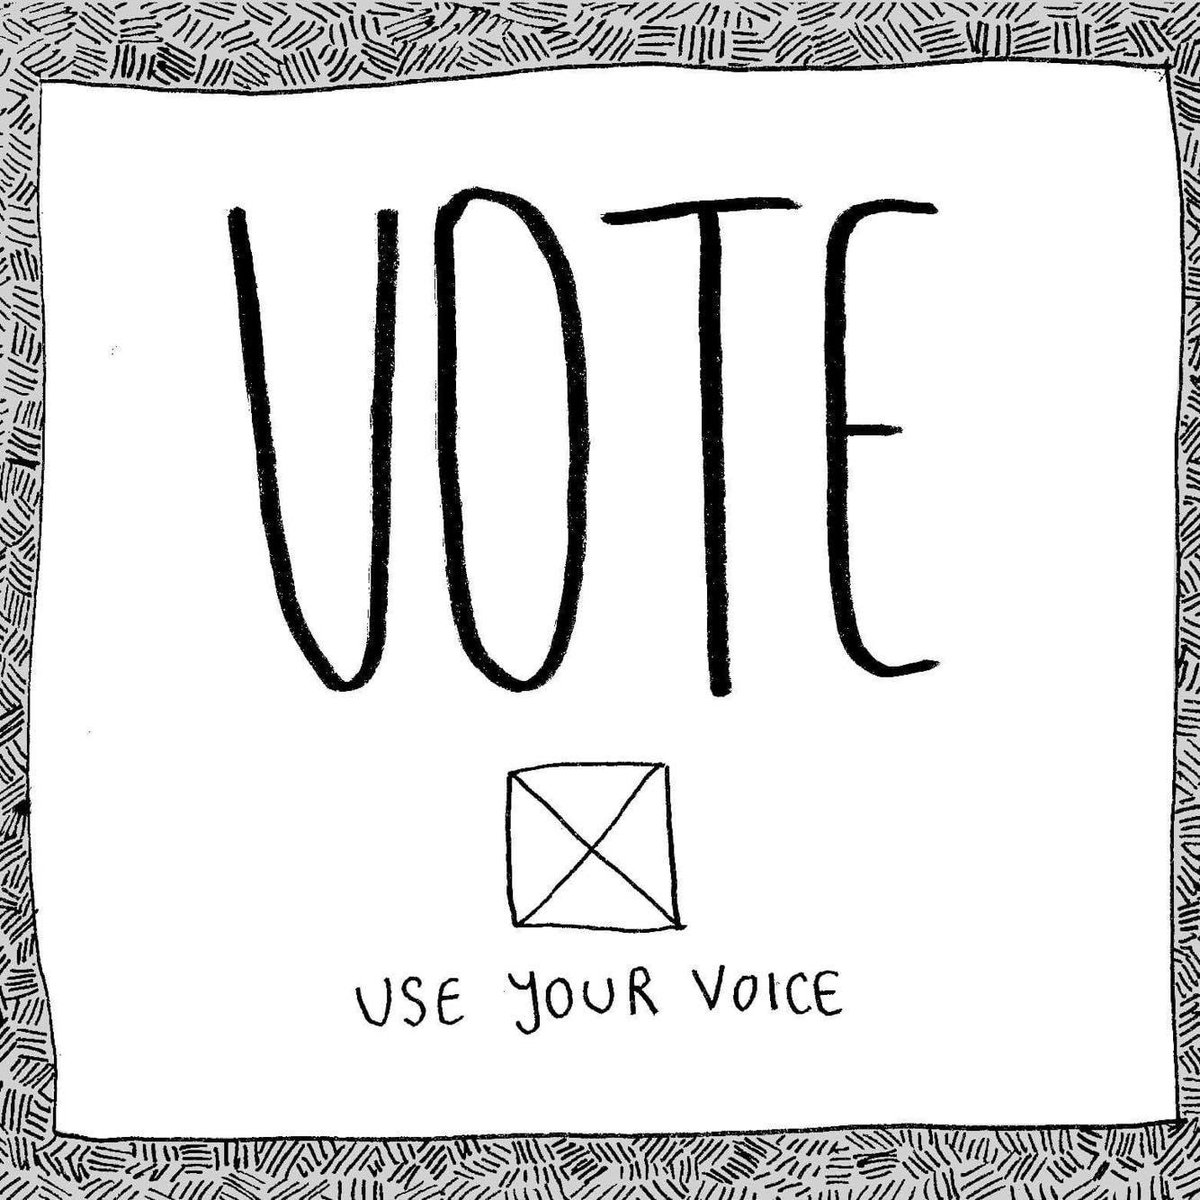 One week left to register for your right to vote in UK election: https://t.co/3FjKcTfIiH #UseYourVoice https://t.co/jP8lWAkARq